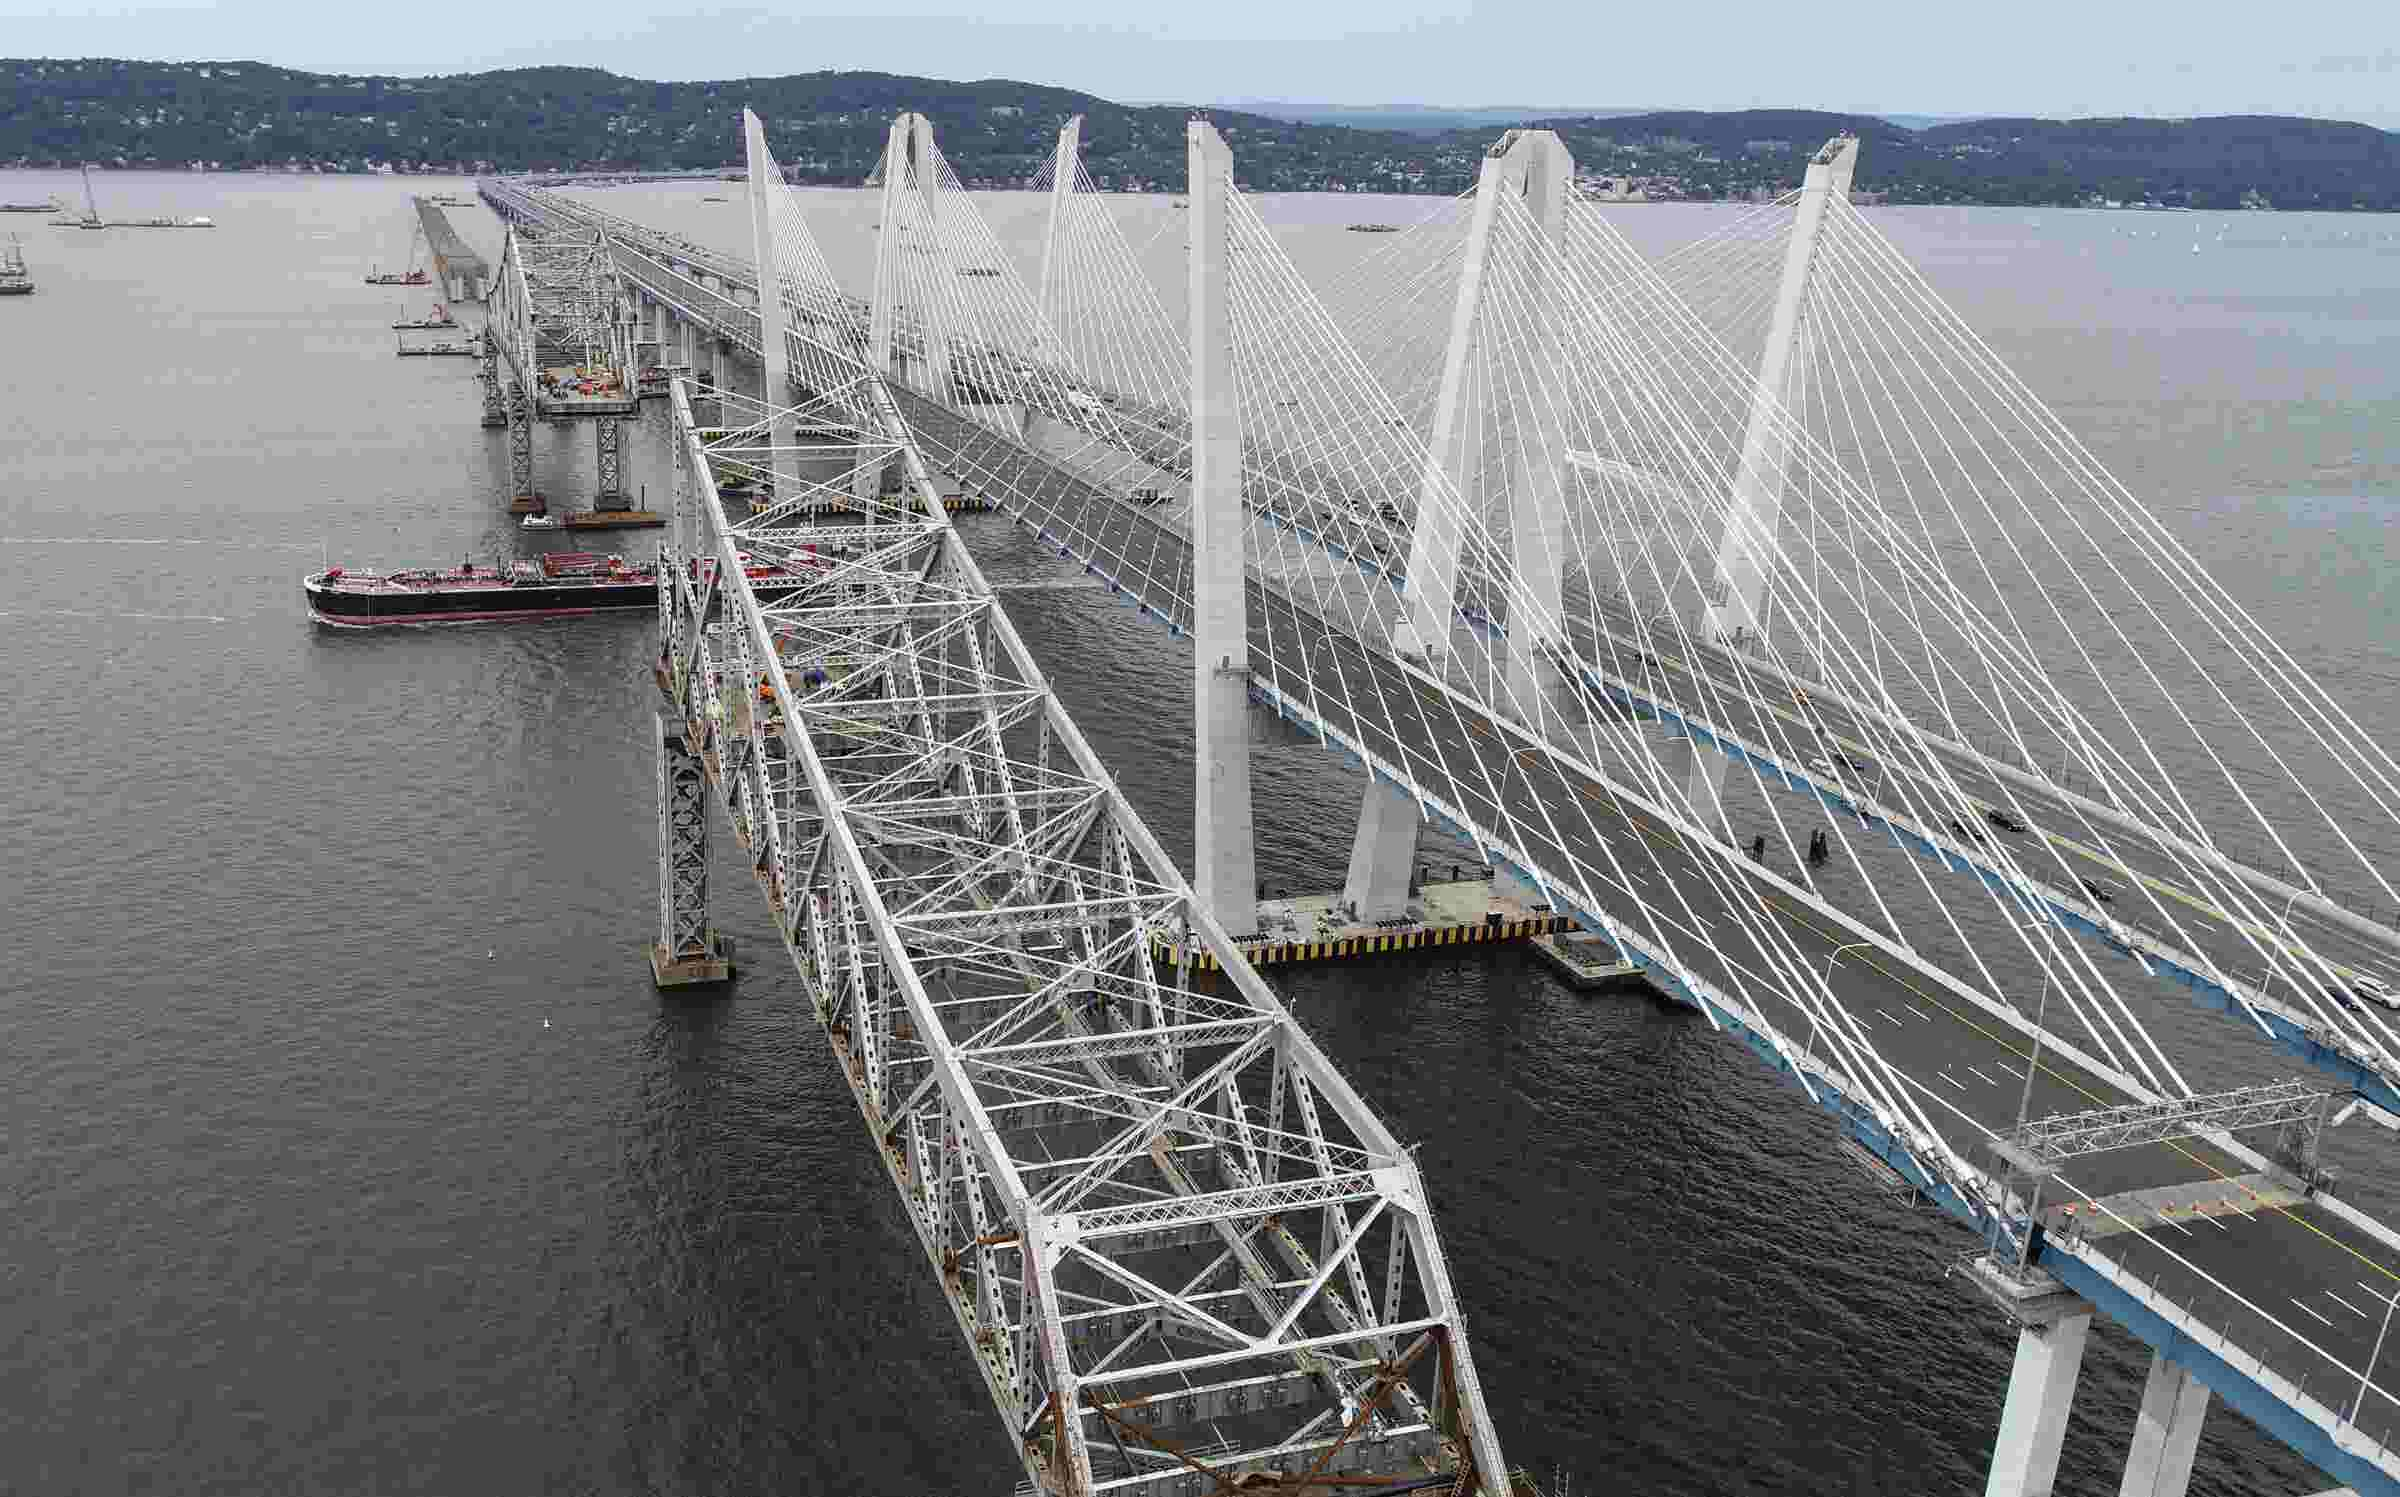 Video: Drone view of Tappan Zee and Cuomo bridges